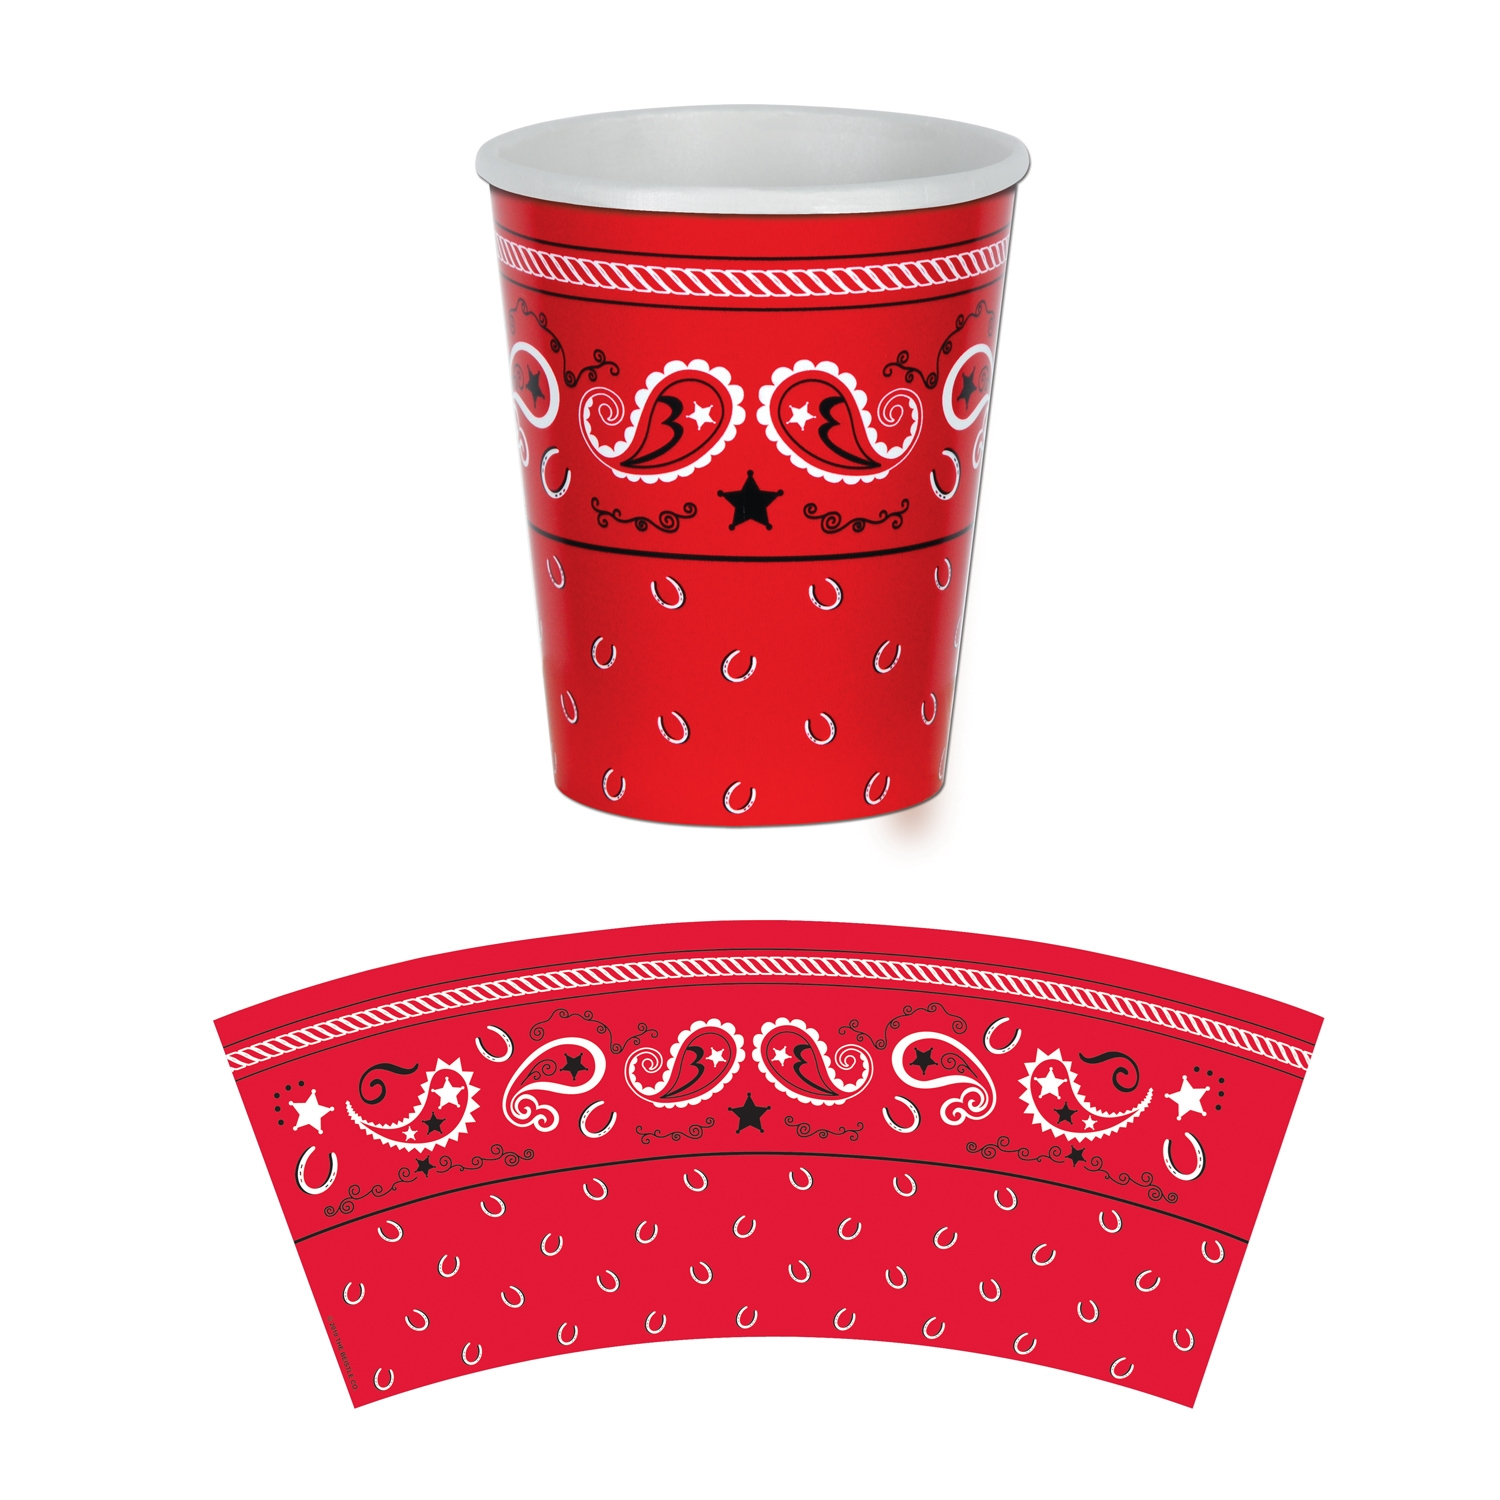 Bandana Beverage Cups (Pack of 12) Bandana Beverage Cups, bandana, cups, western, new years eve, decoration, wholesale, inexpensive, bulk, cowboy, cowgirl